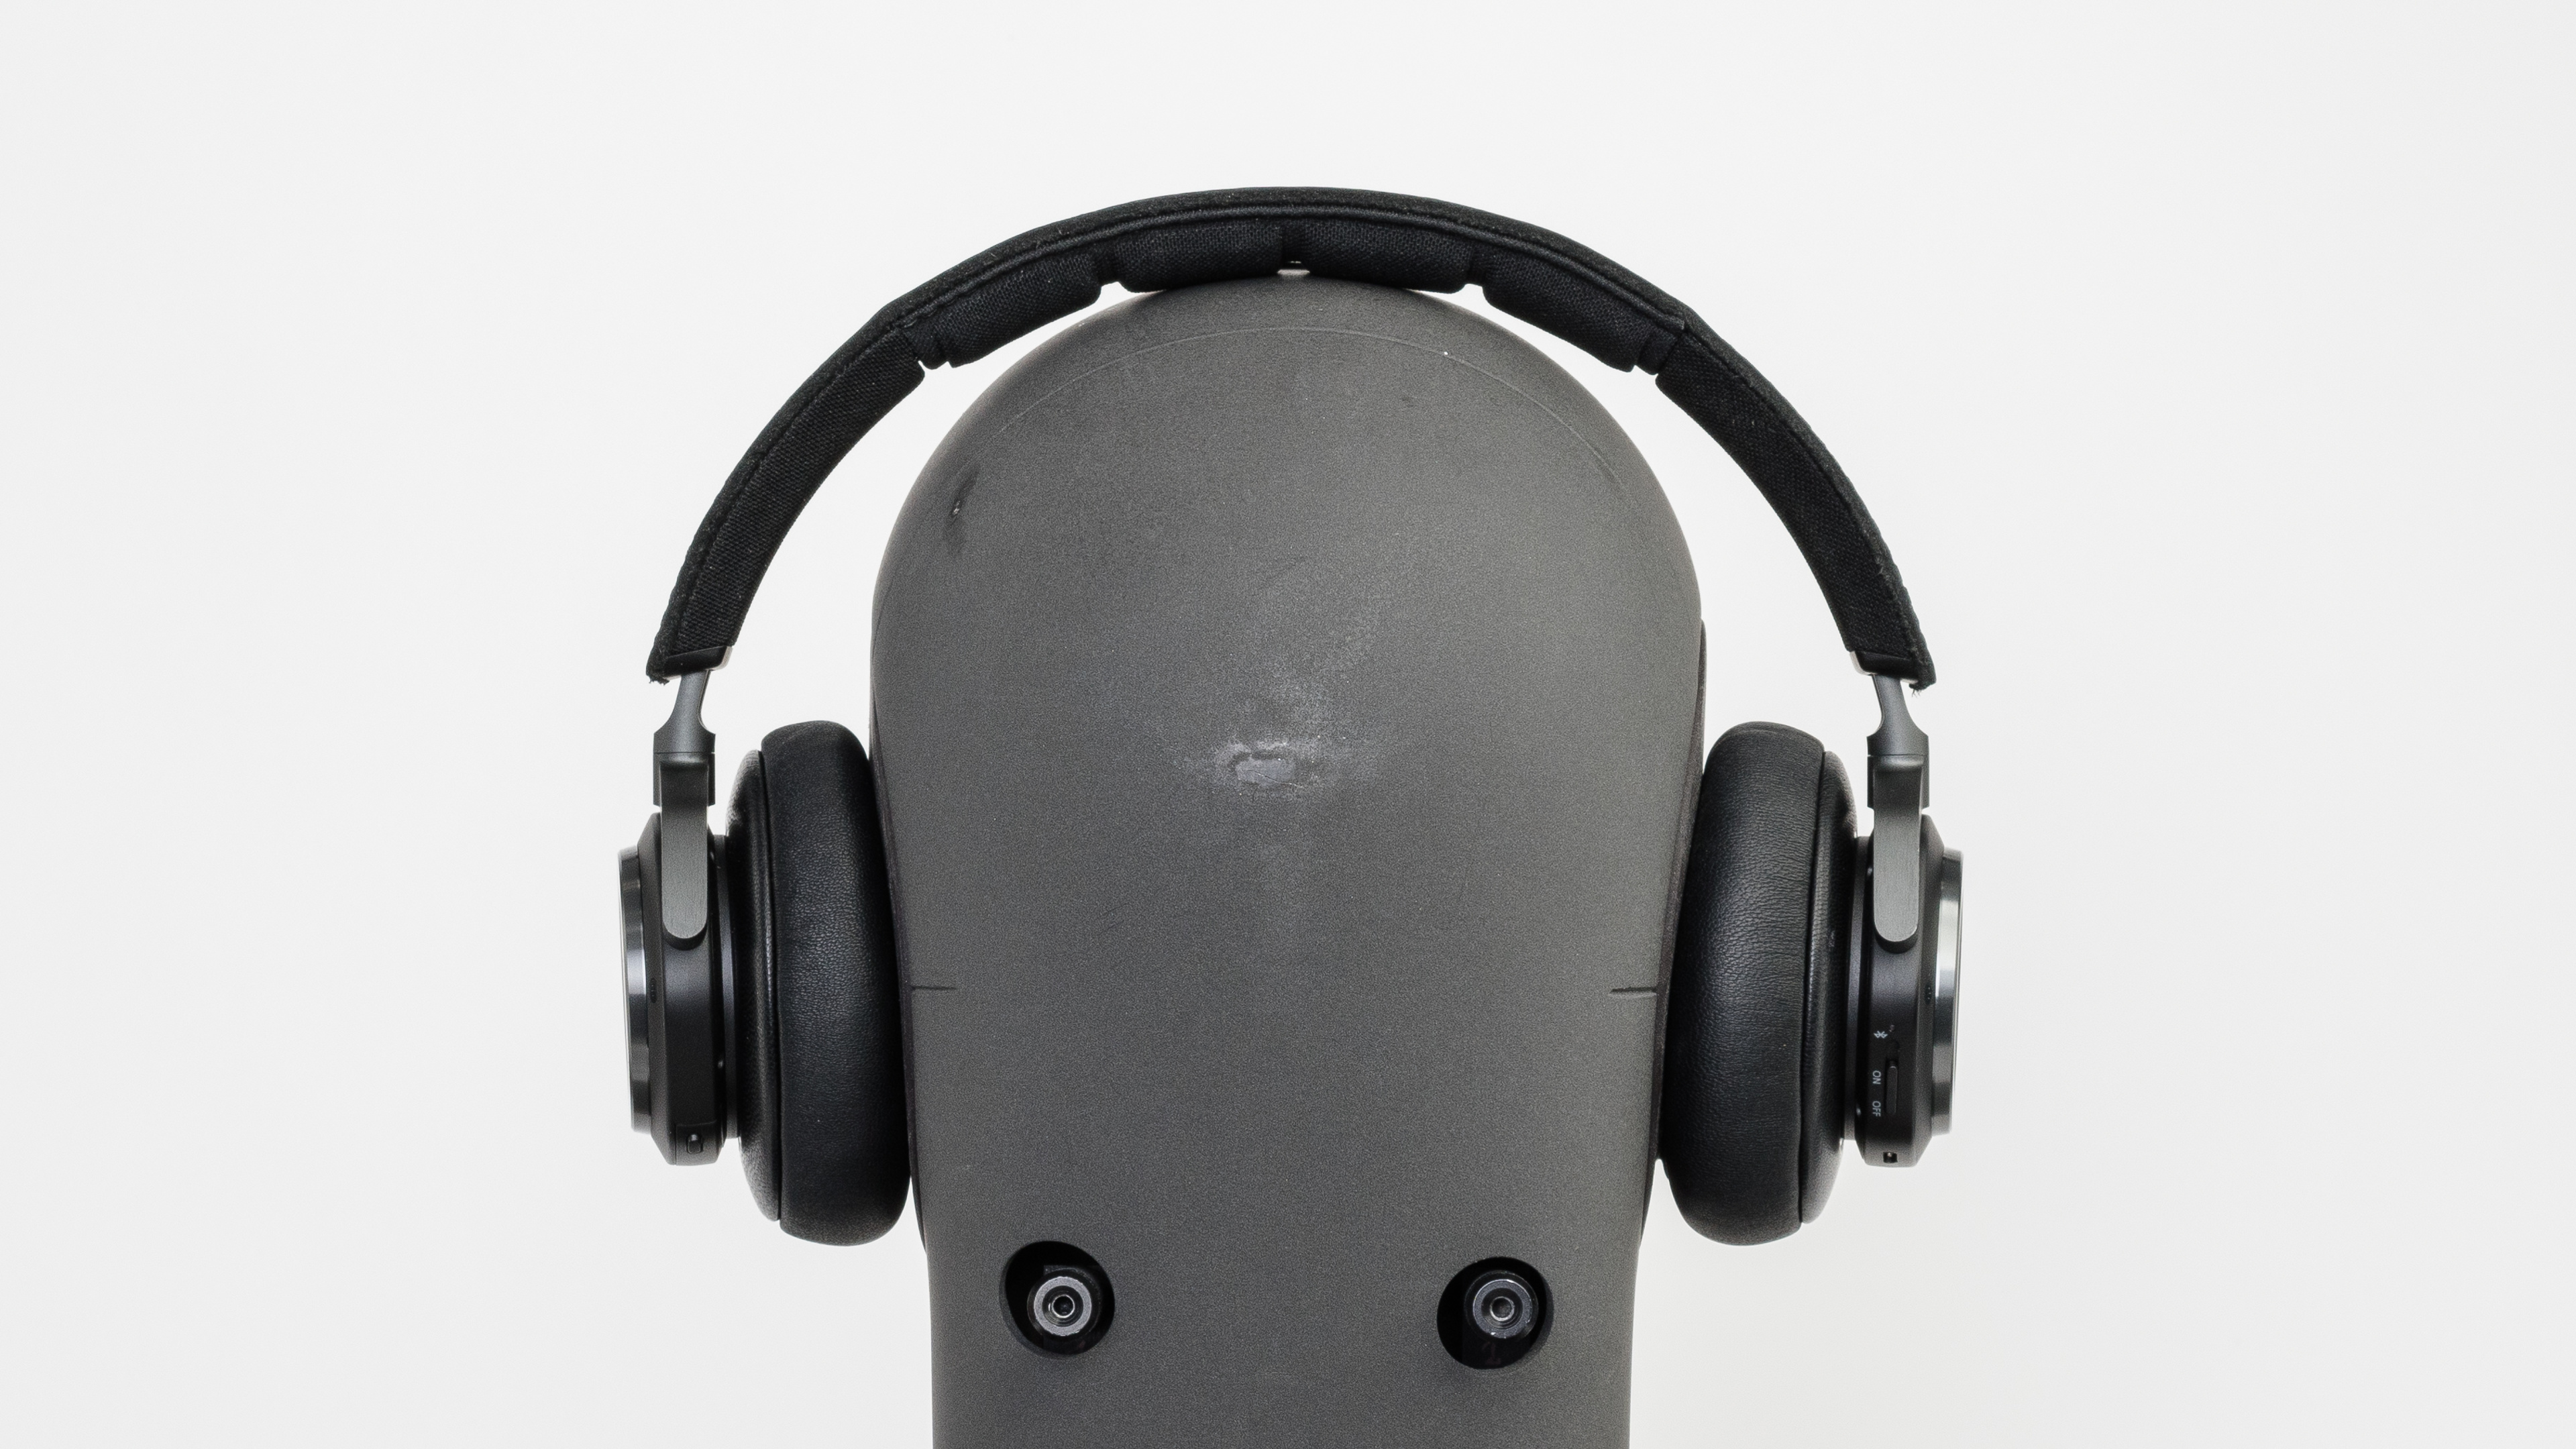 Bo Play Beoplay H9 Review Bang Ampamp Olufsen H3 Lightweight Earphone Black Stability Picture